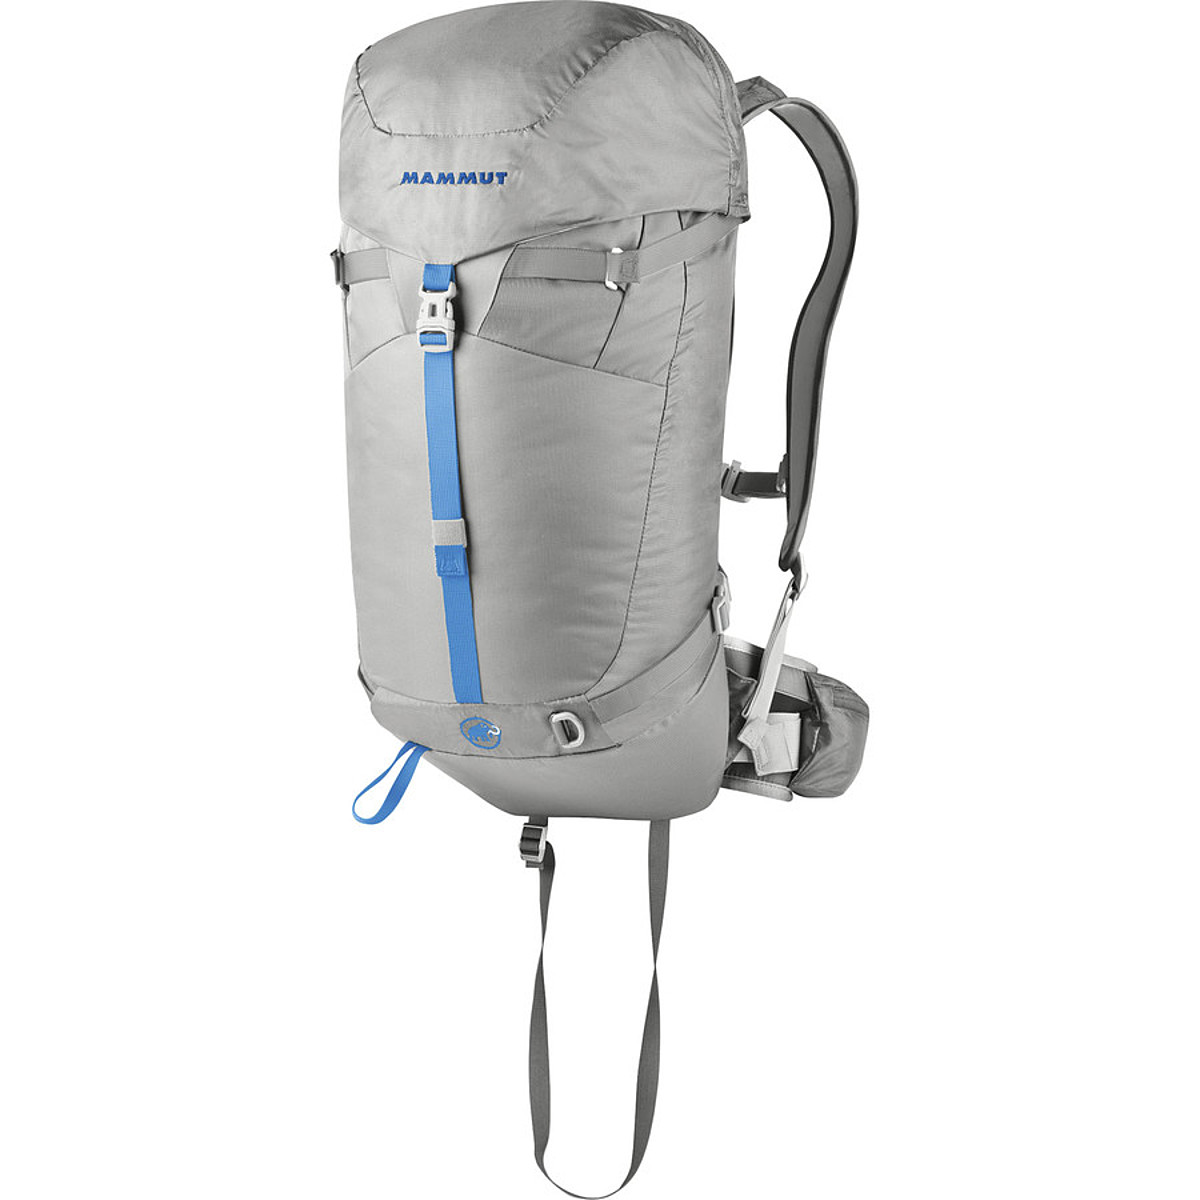 Mammut Light Protection Airbag